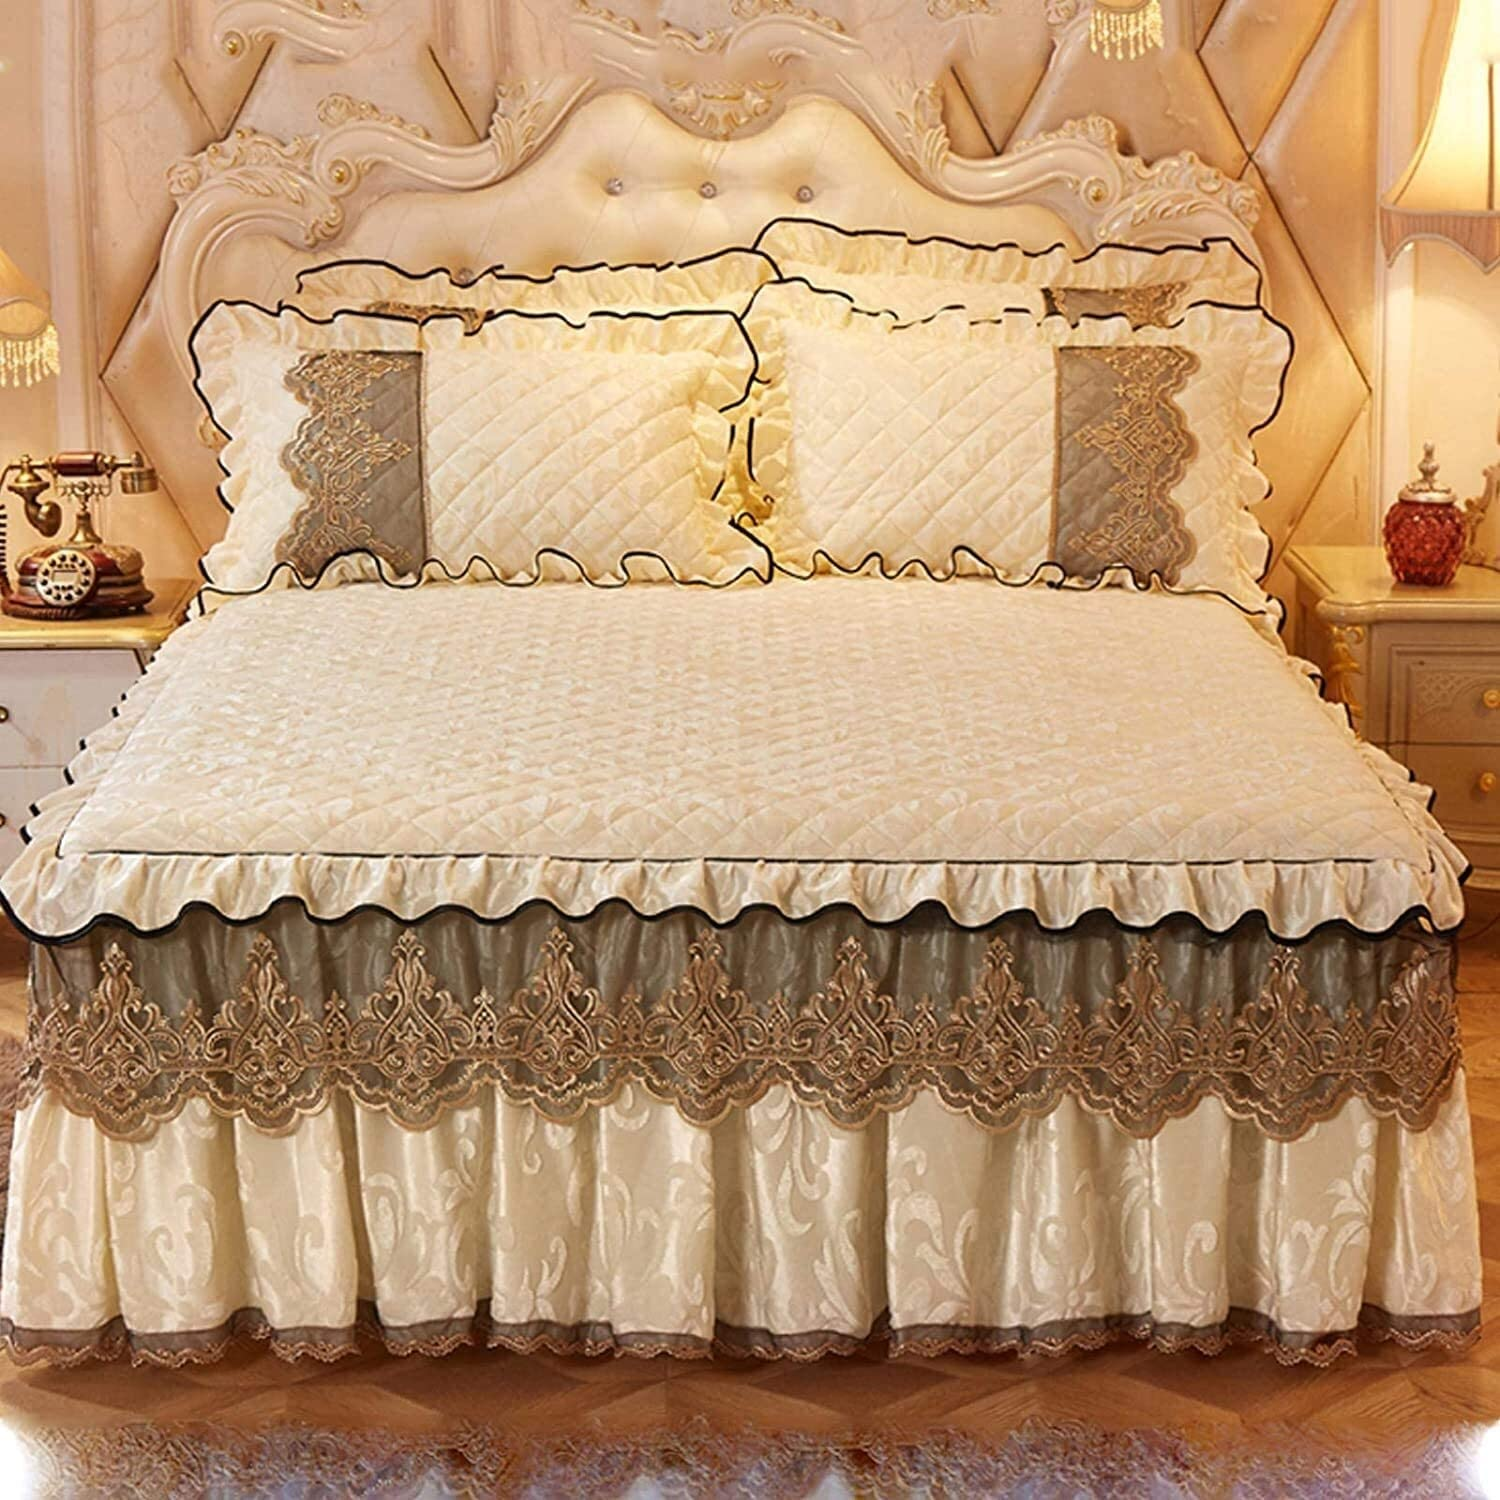 Phoenix Mall Bed Cover 3 Side Coverage Keep Bedspread Thicken Protector Sheet Tulsa Mall